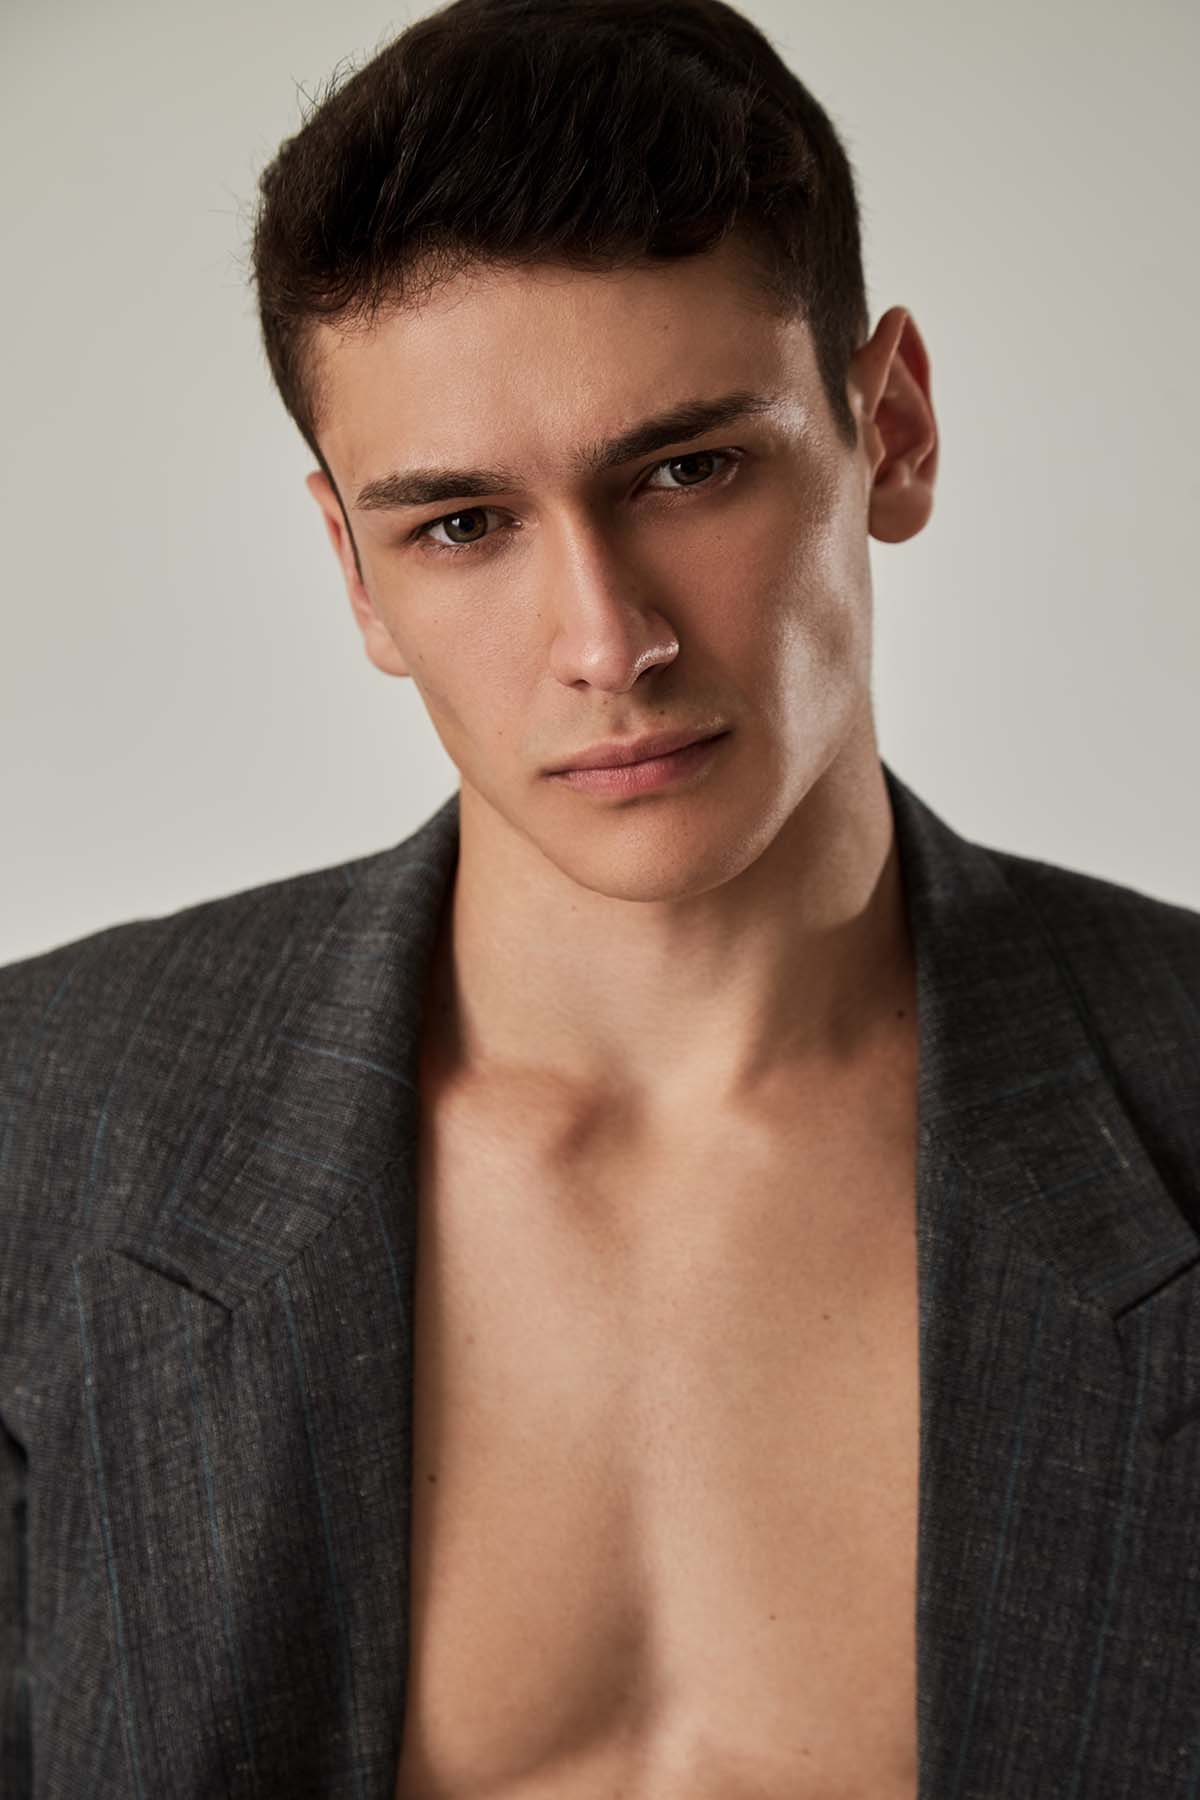 Igor Botassini by Jo Paiva for Brazilian Male Model